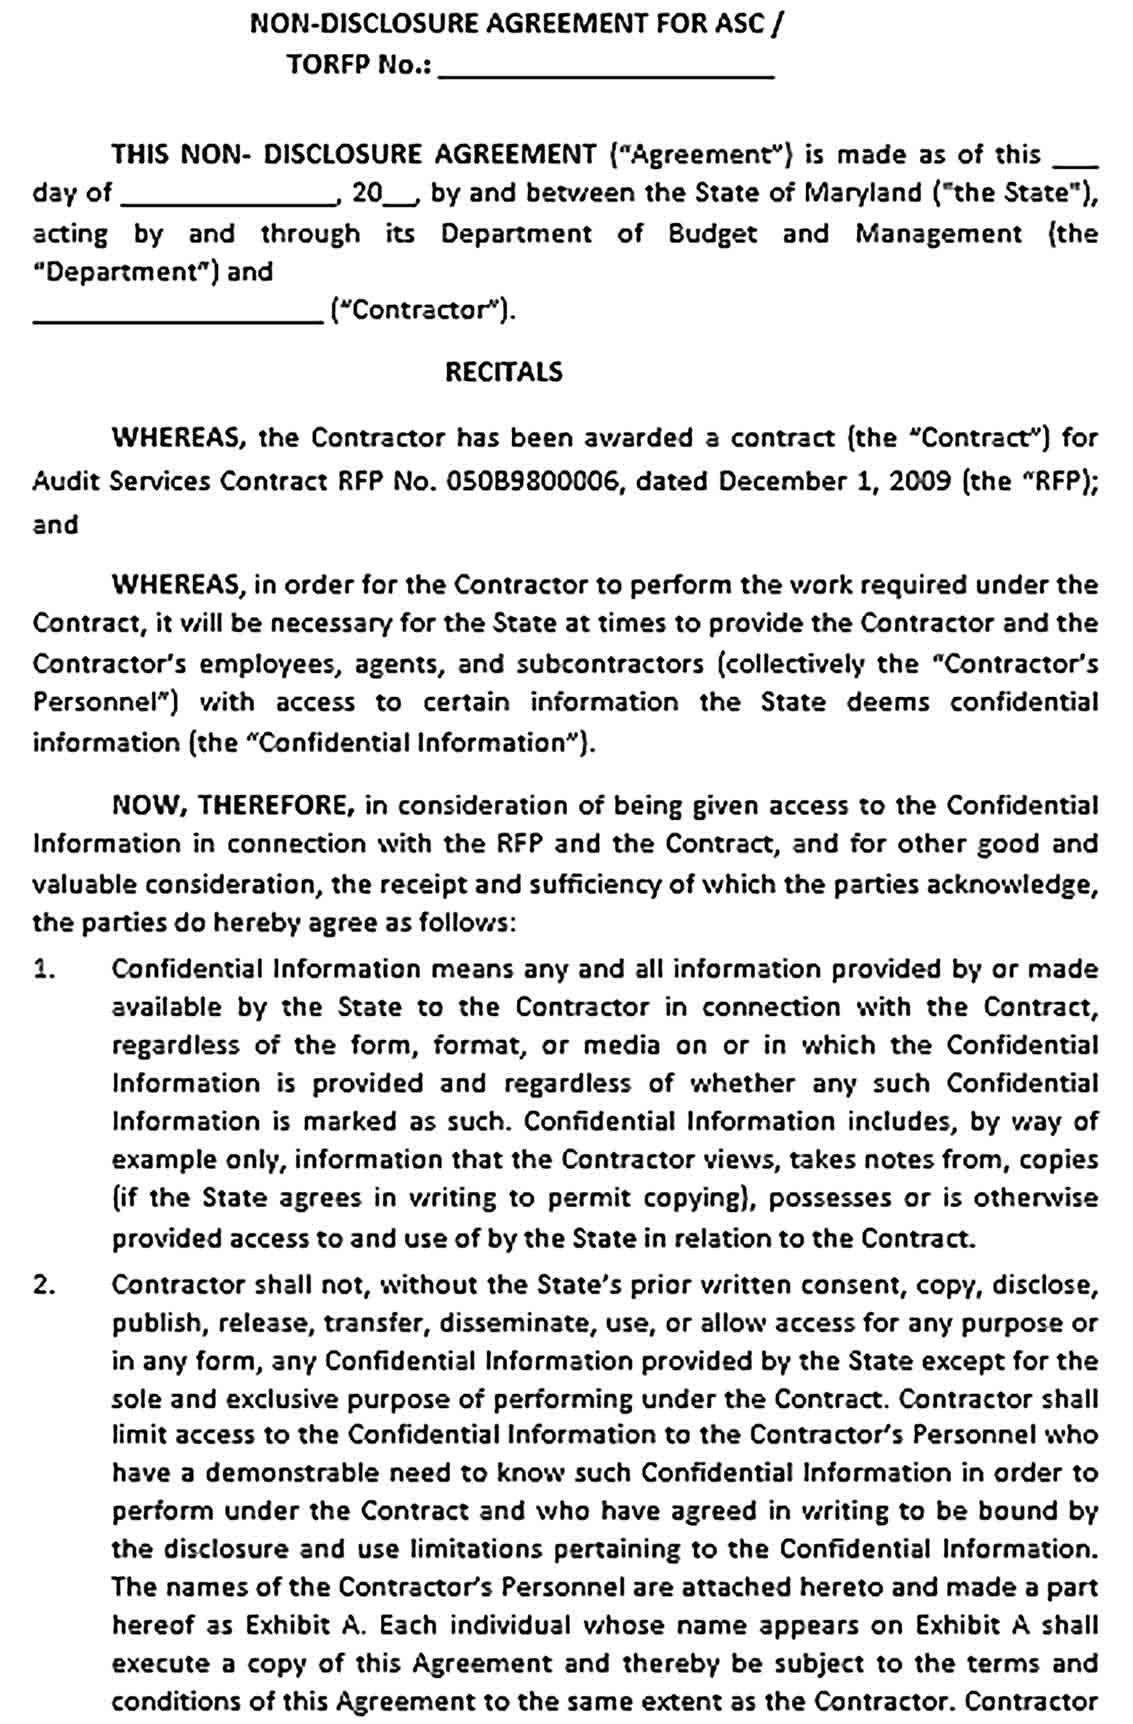 Sample State Audit Non Disclosure and Confidentiality Agreement